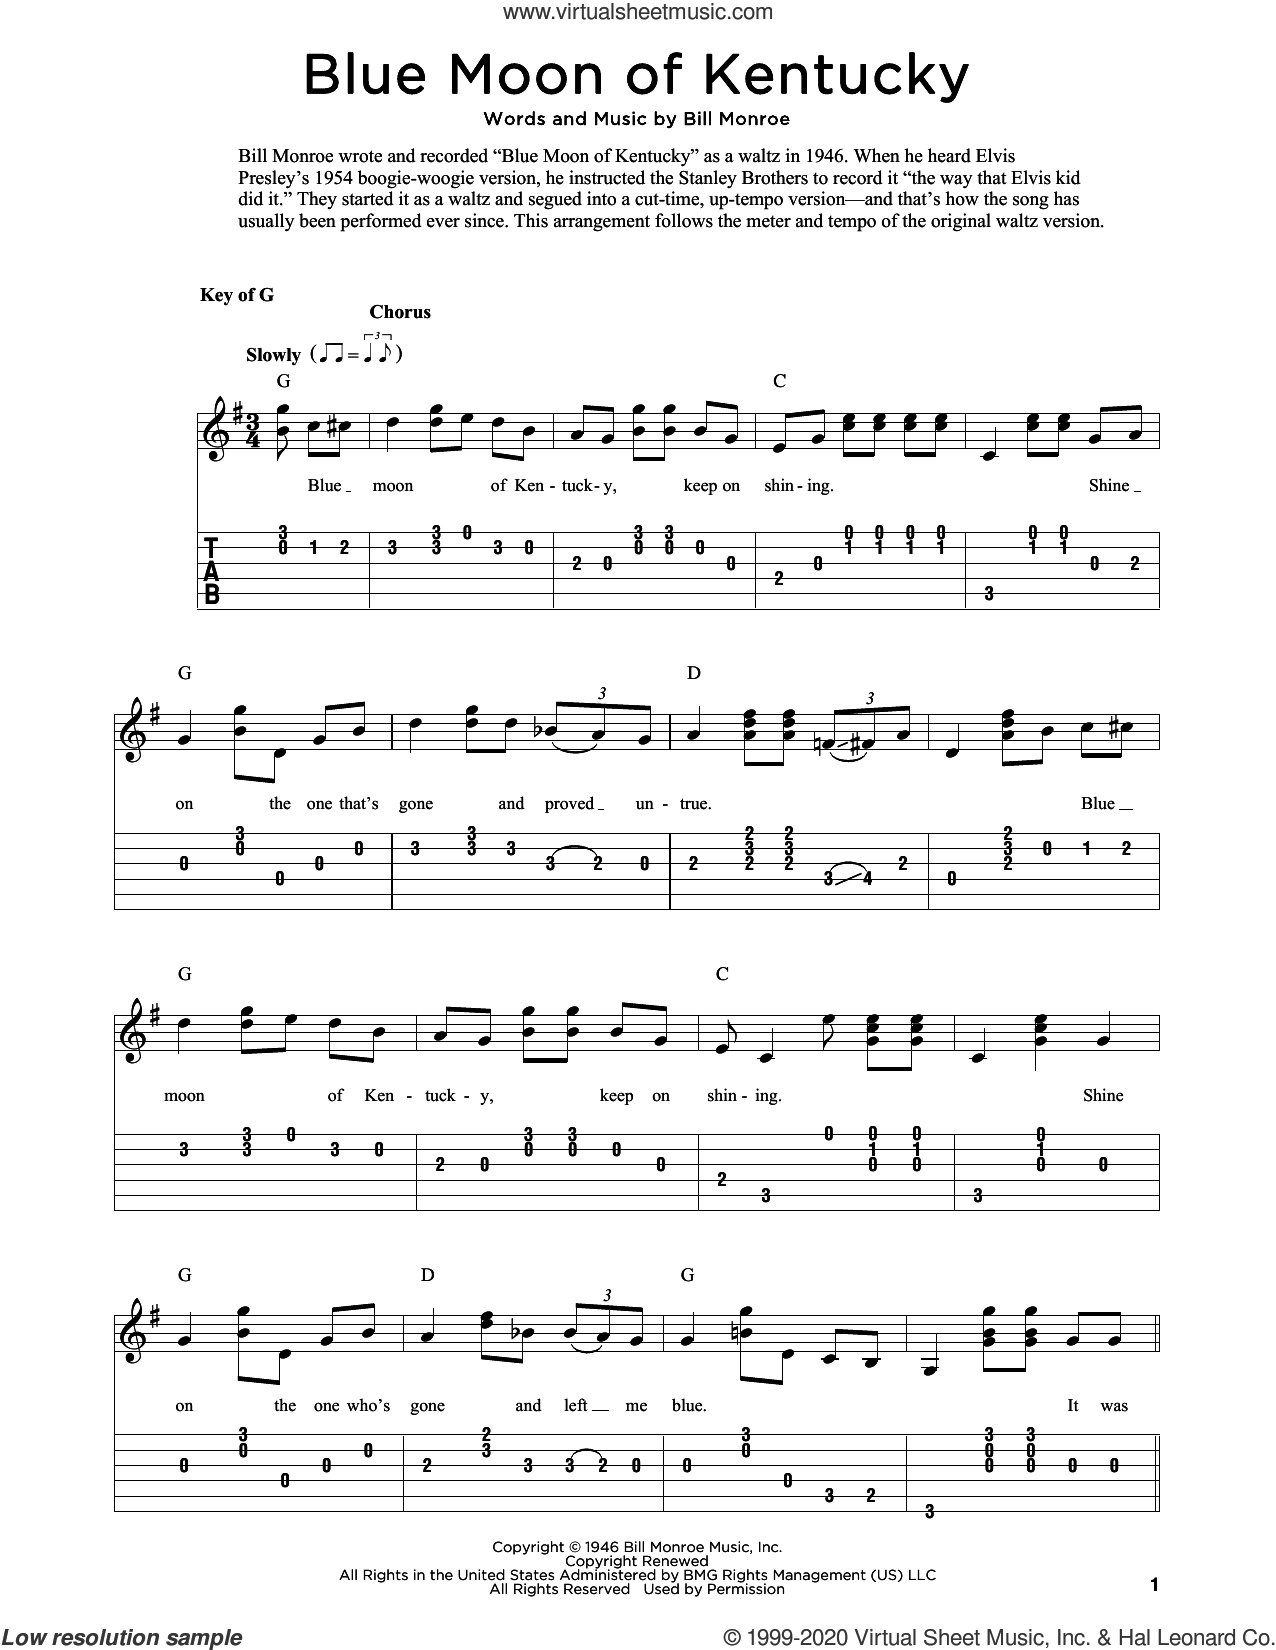 Blue Moon Of Kentucky (arr. Fred Sokolow) sheet music for guitar solo by Bill Monroe and Fred Sokolow, intermediate skill level